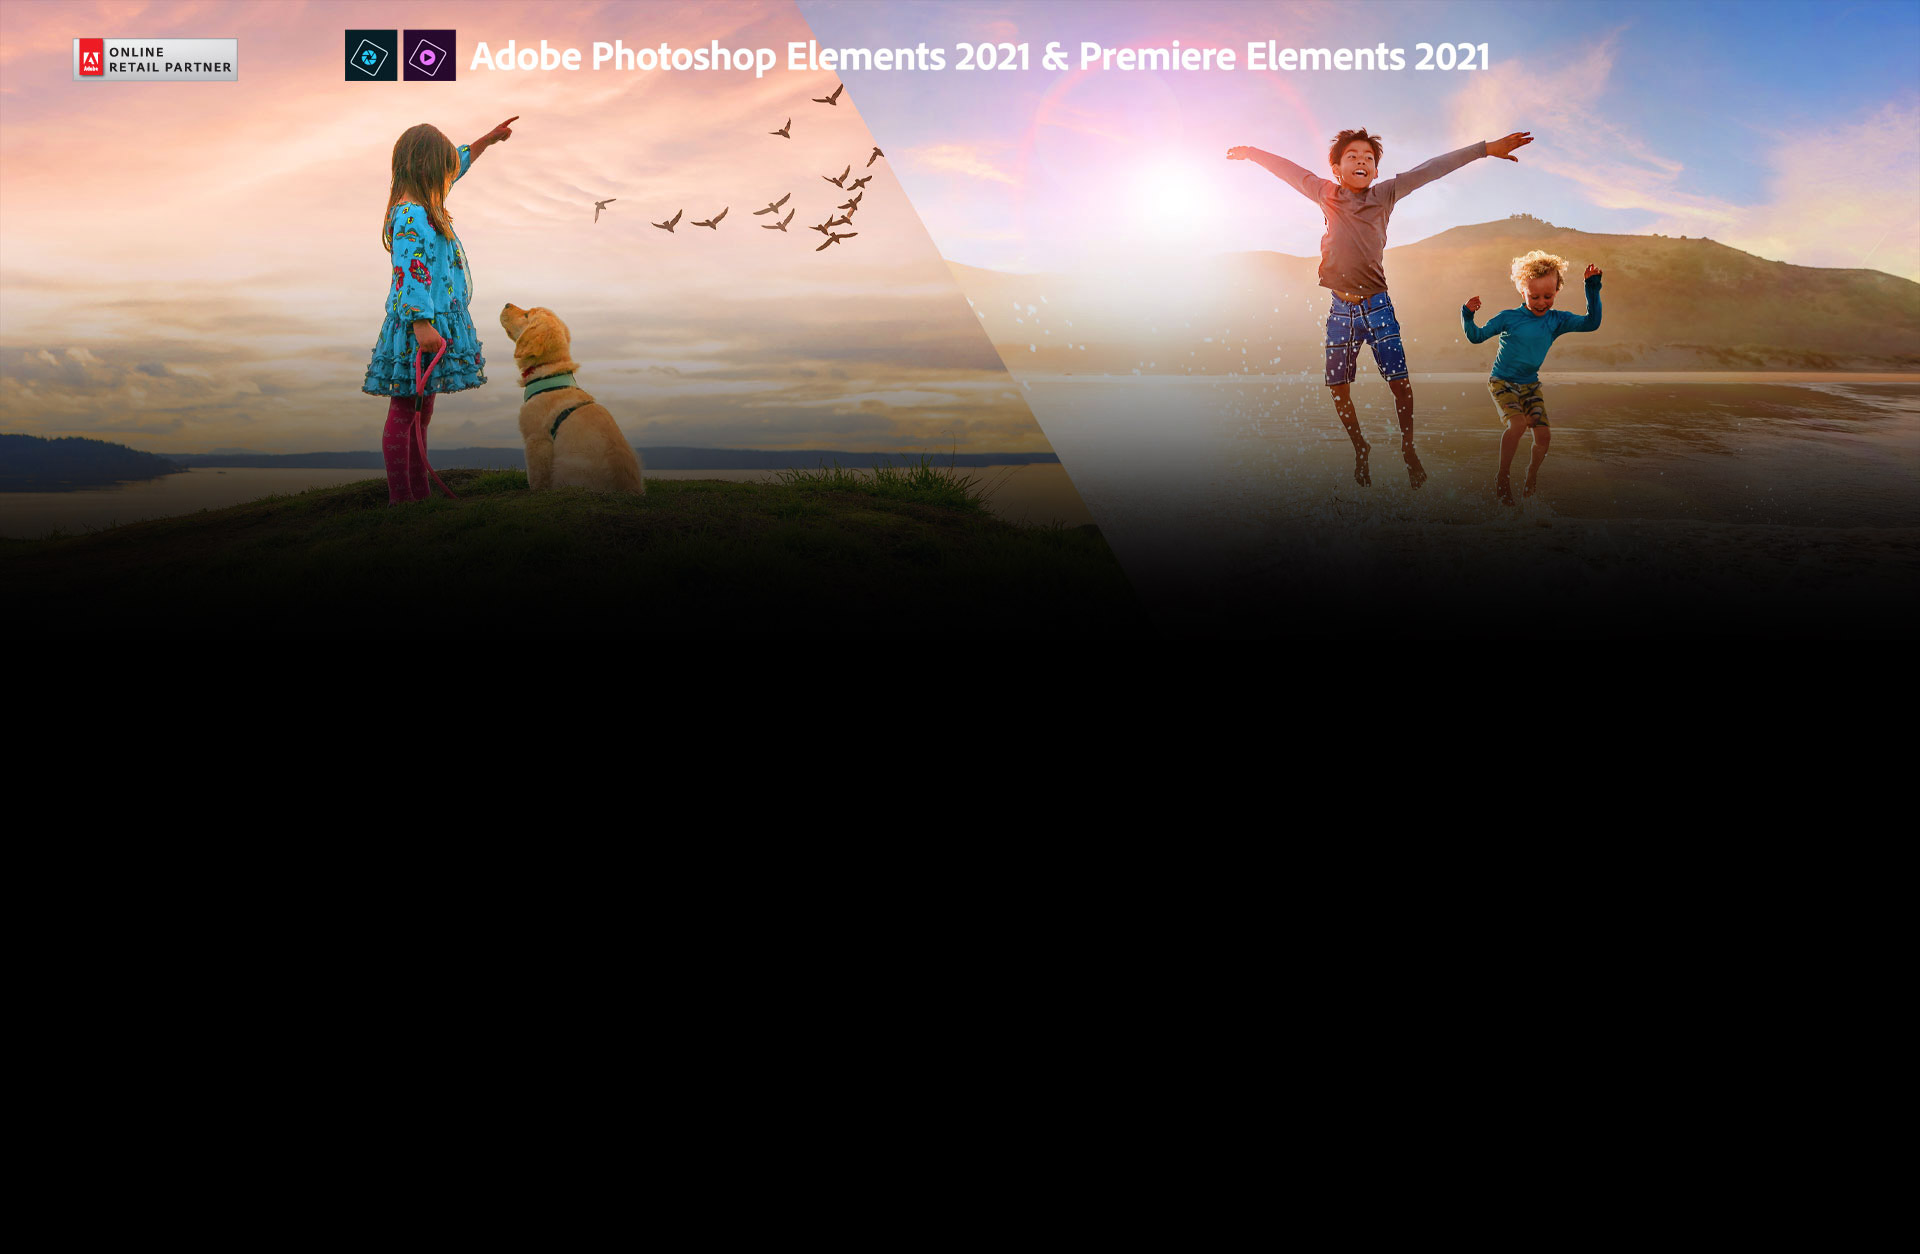 Adobe Photoshop Elements 2021 & Adobe Premiere Elements  2021 (Windows)